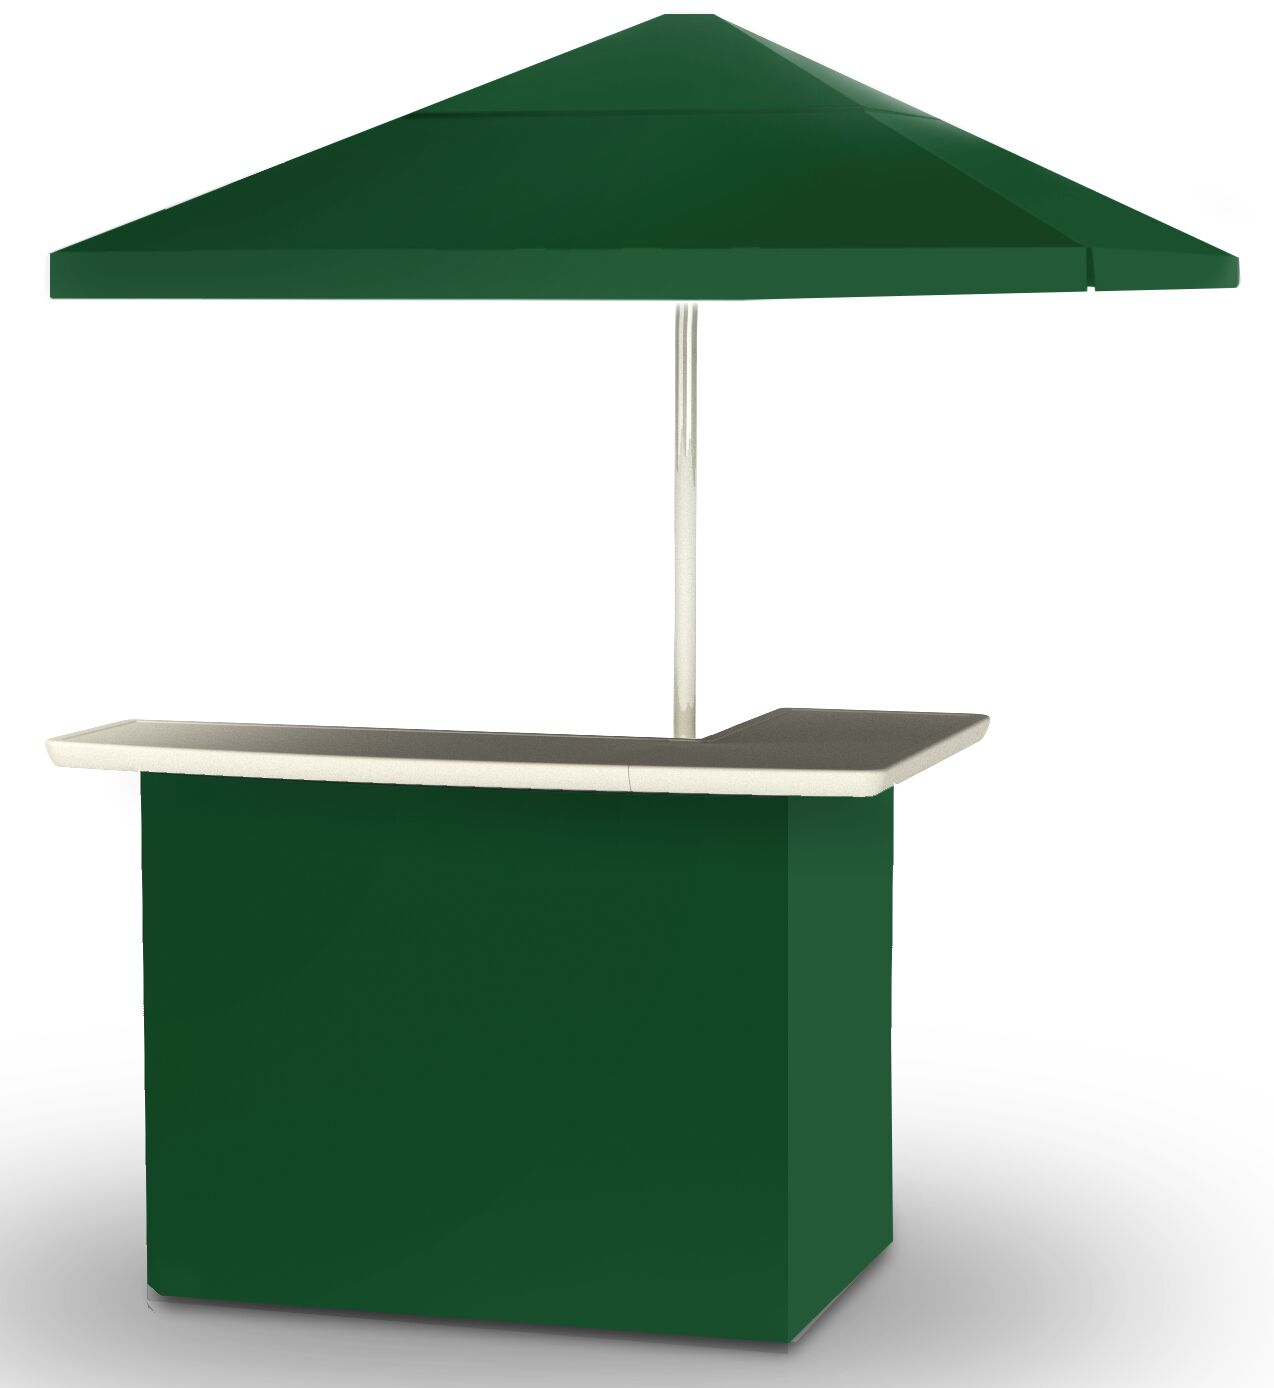 2 Piece Patio Home bar Finish: Green